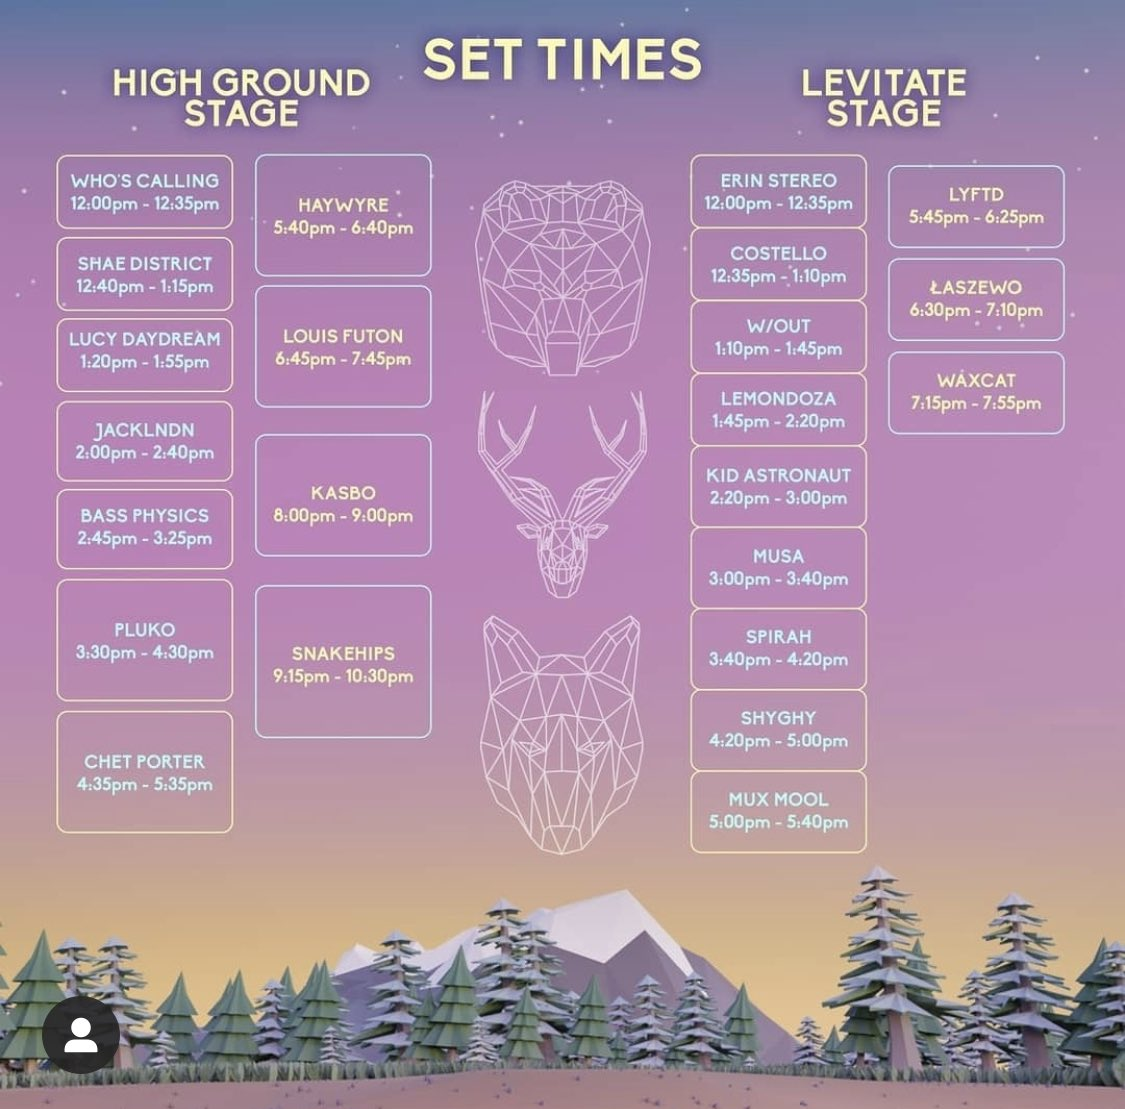 Set times @highgroundfest this Saturday! 🙌 catch us main stage at 1:20pm!